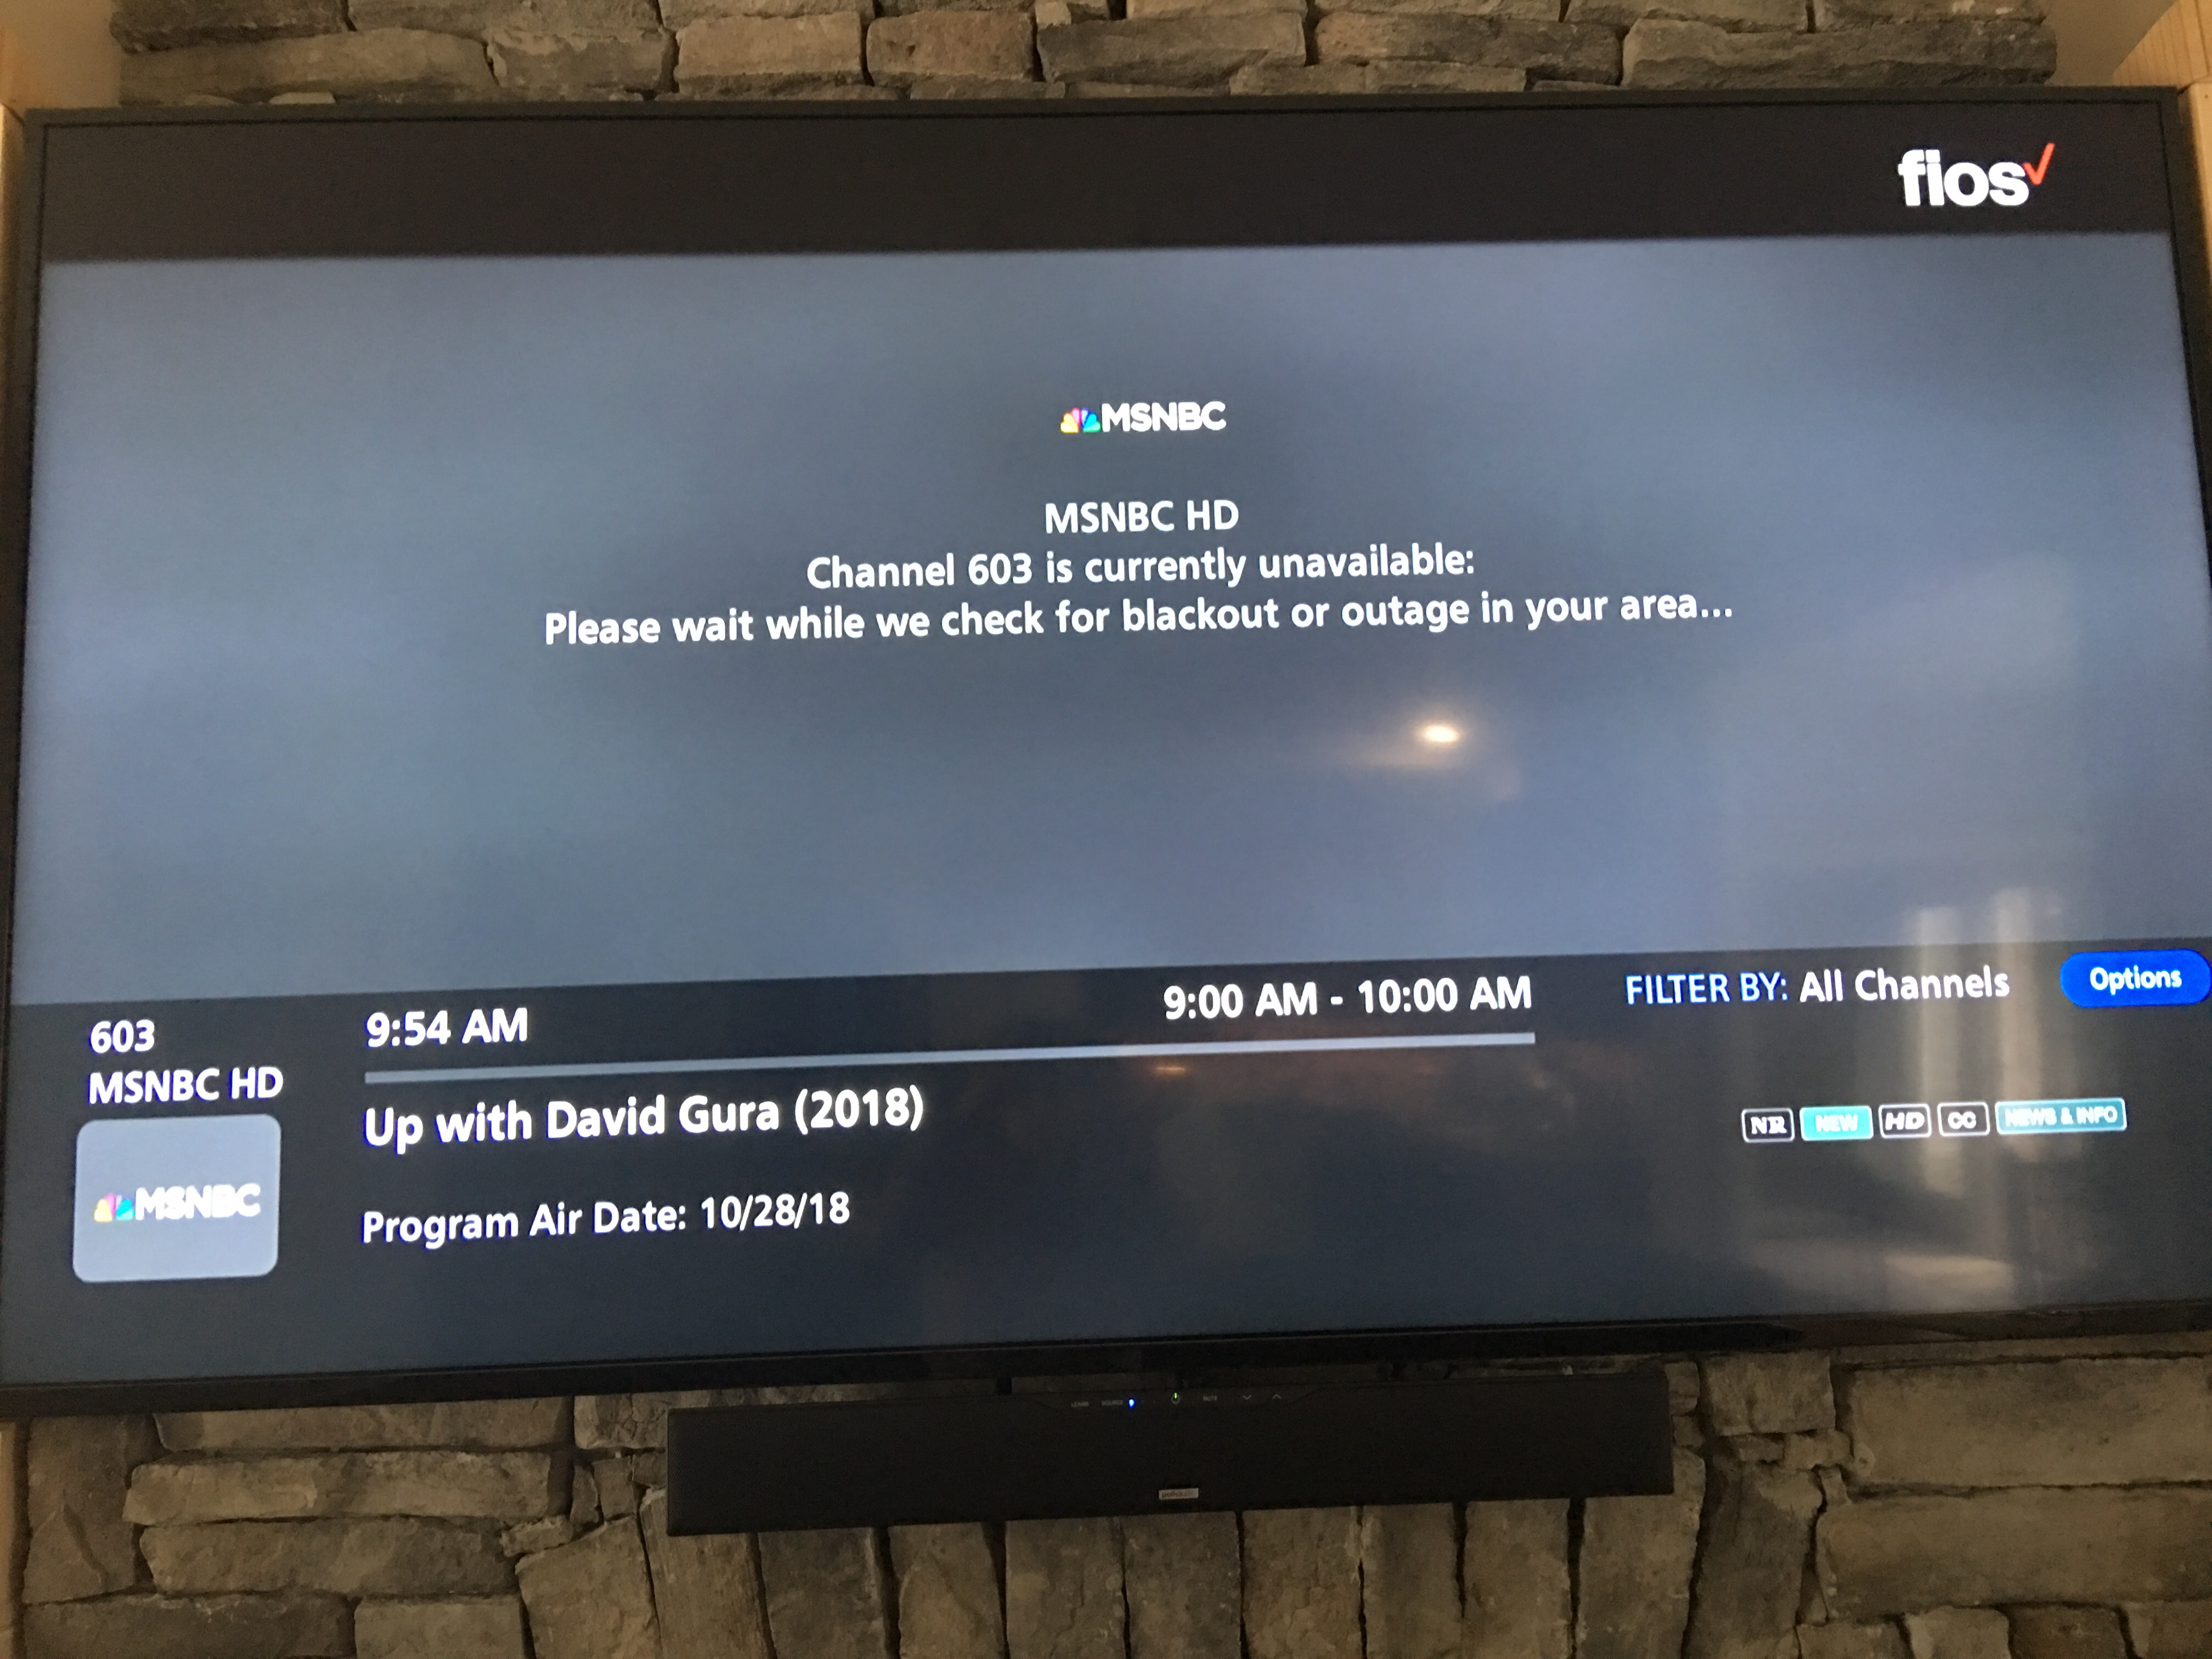 Some channels have been out since Oct 26, 2018 - Verizon